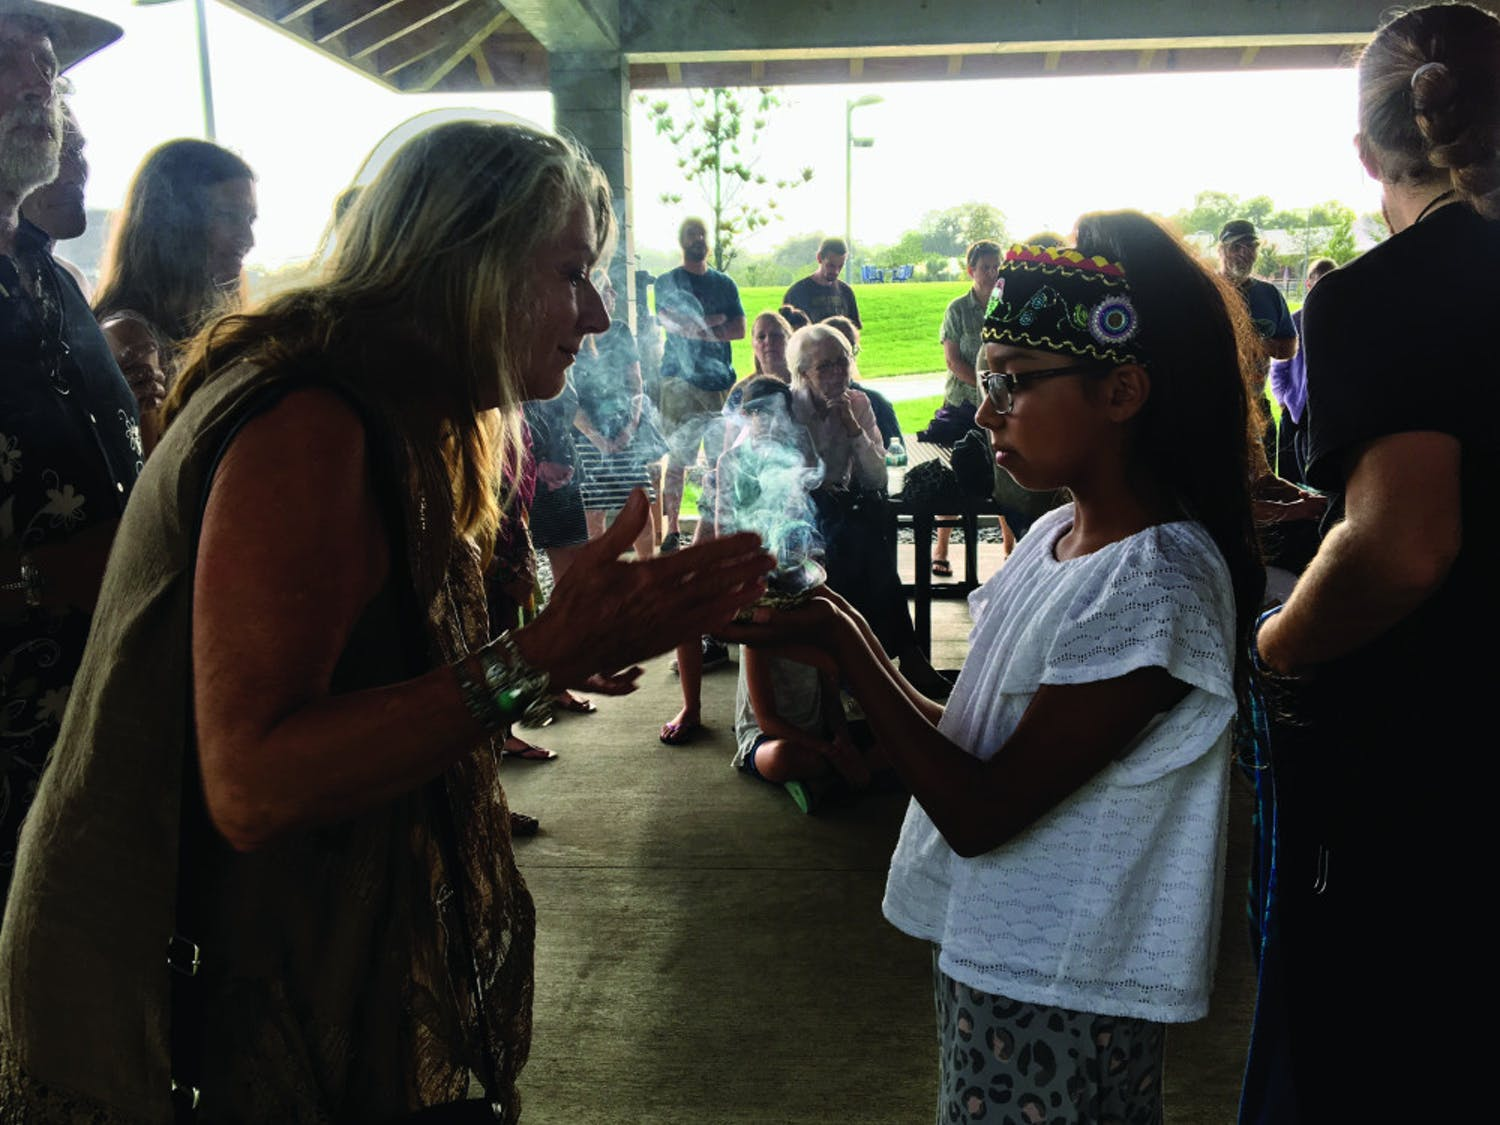 Lily Smith, 11, welcomed guests at a Wednesday night water ceremony held at Depot Park, located at 200 SE Depot Ave., by smudging them with sage. At the ceremony, about 30 people sang, danced and discussed the importance of the four elements — especially water.